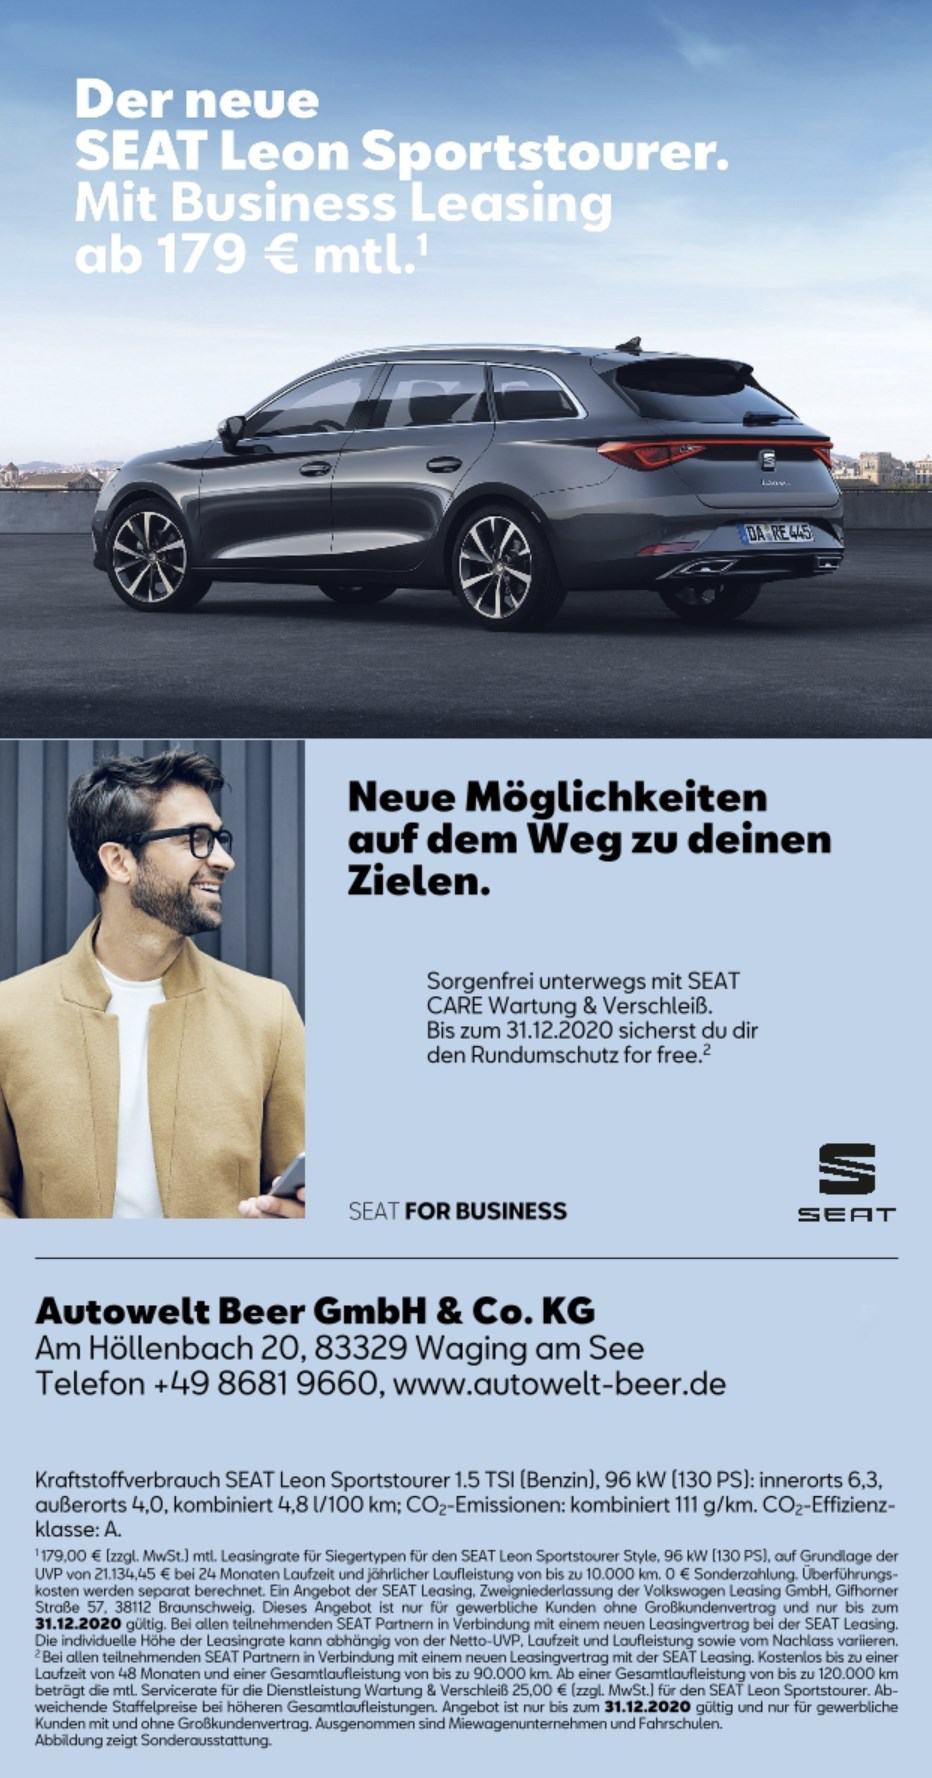 SEAT for Business: der Leon ST im Business-Leasing